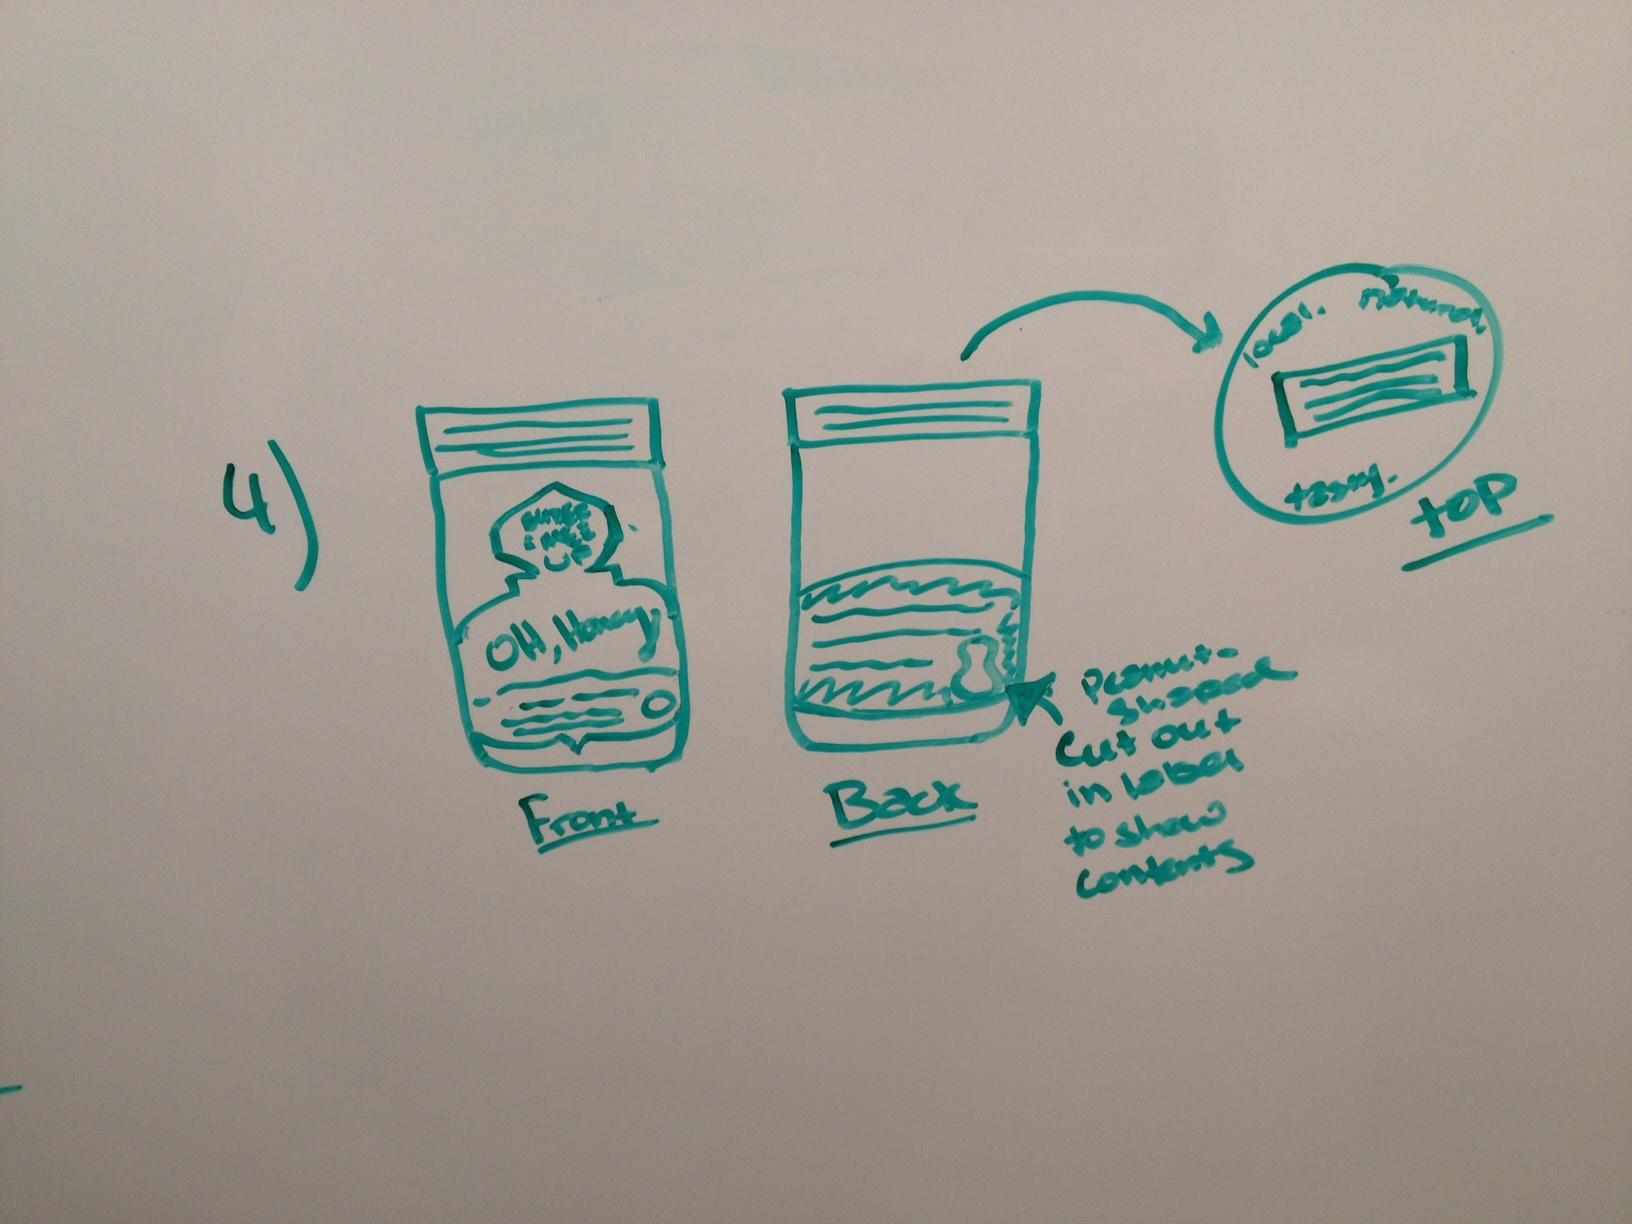 Peanut Butter Packaging - image 22 - student project